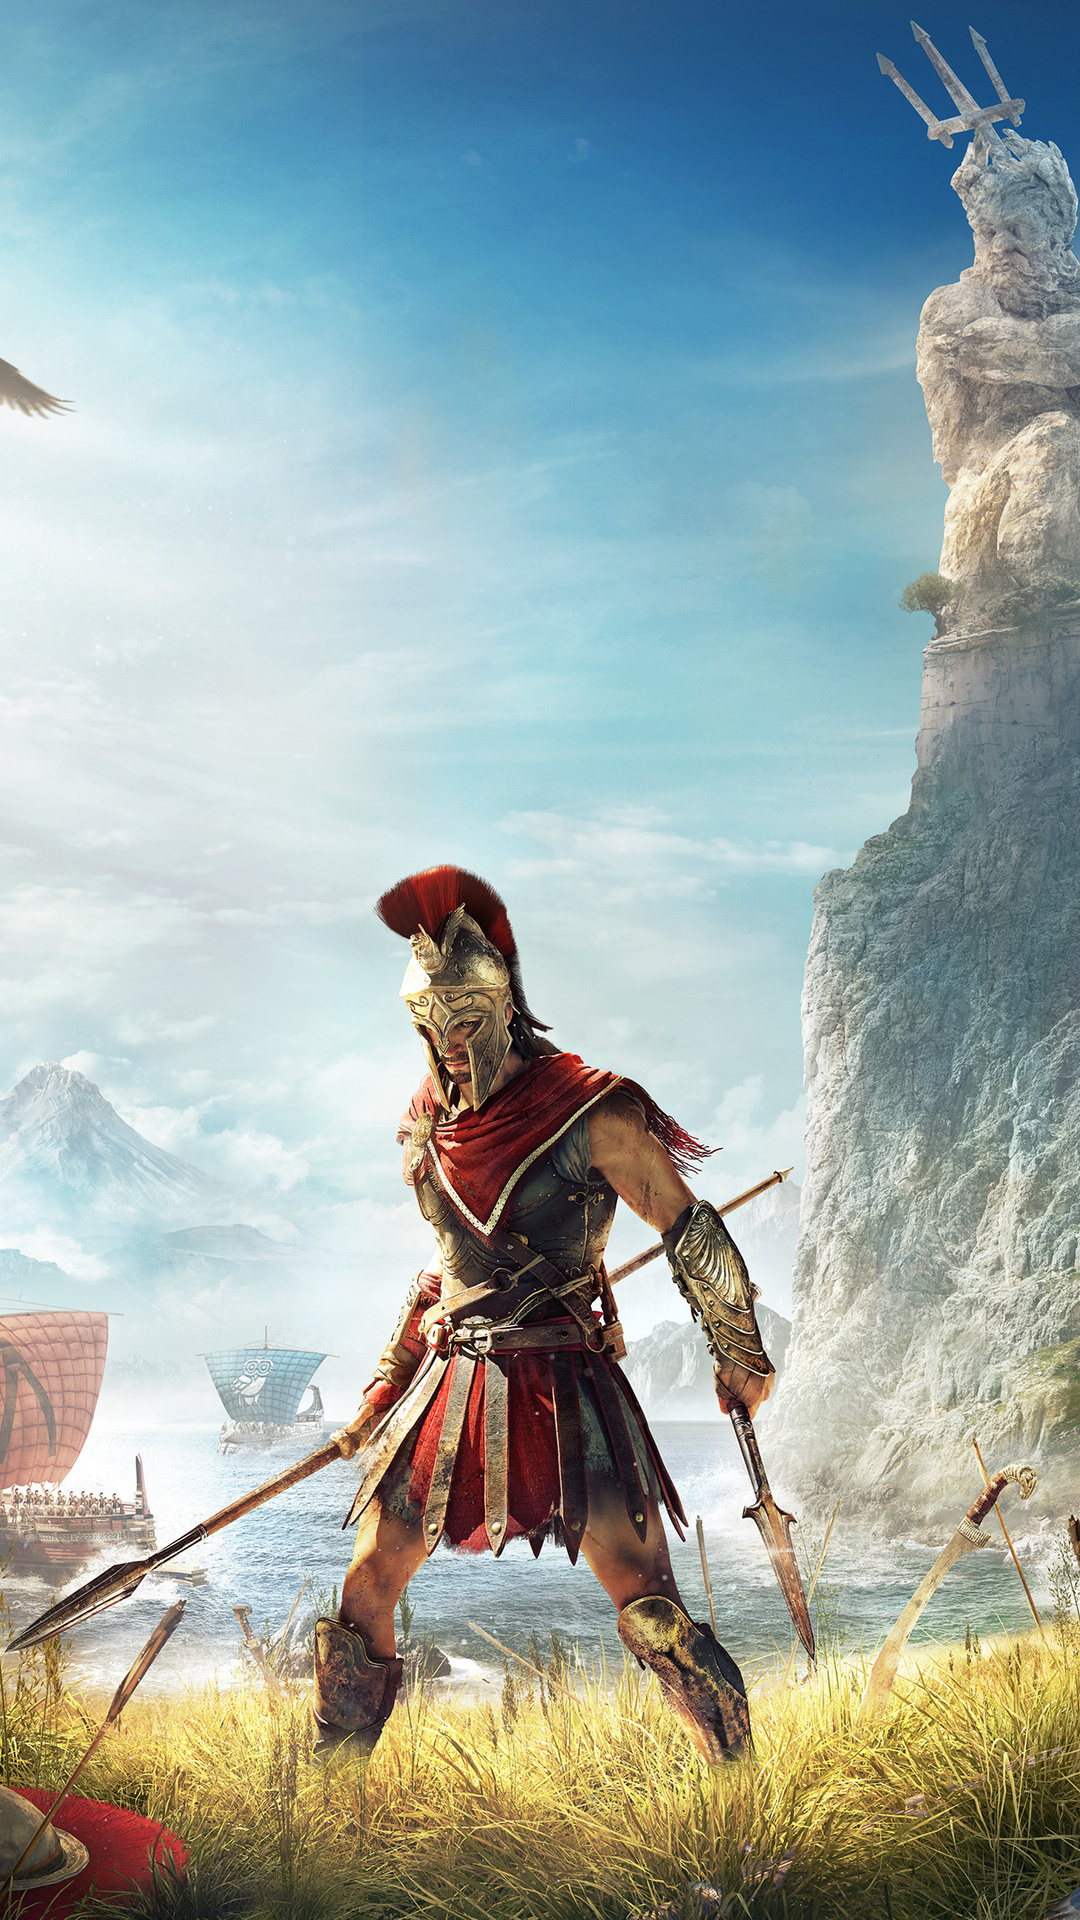 1080x1920 Assassins Creed Odyssey 2018 4k Iphone 7,6s,6 ...